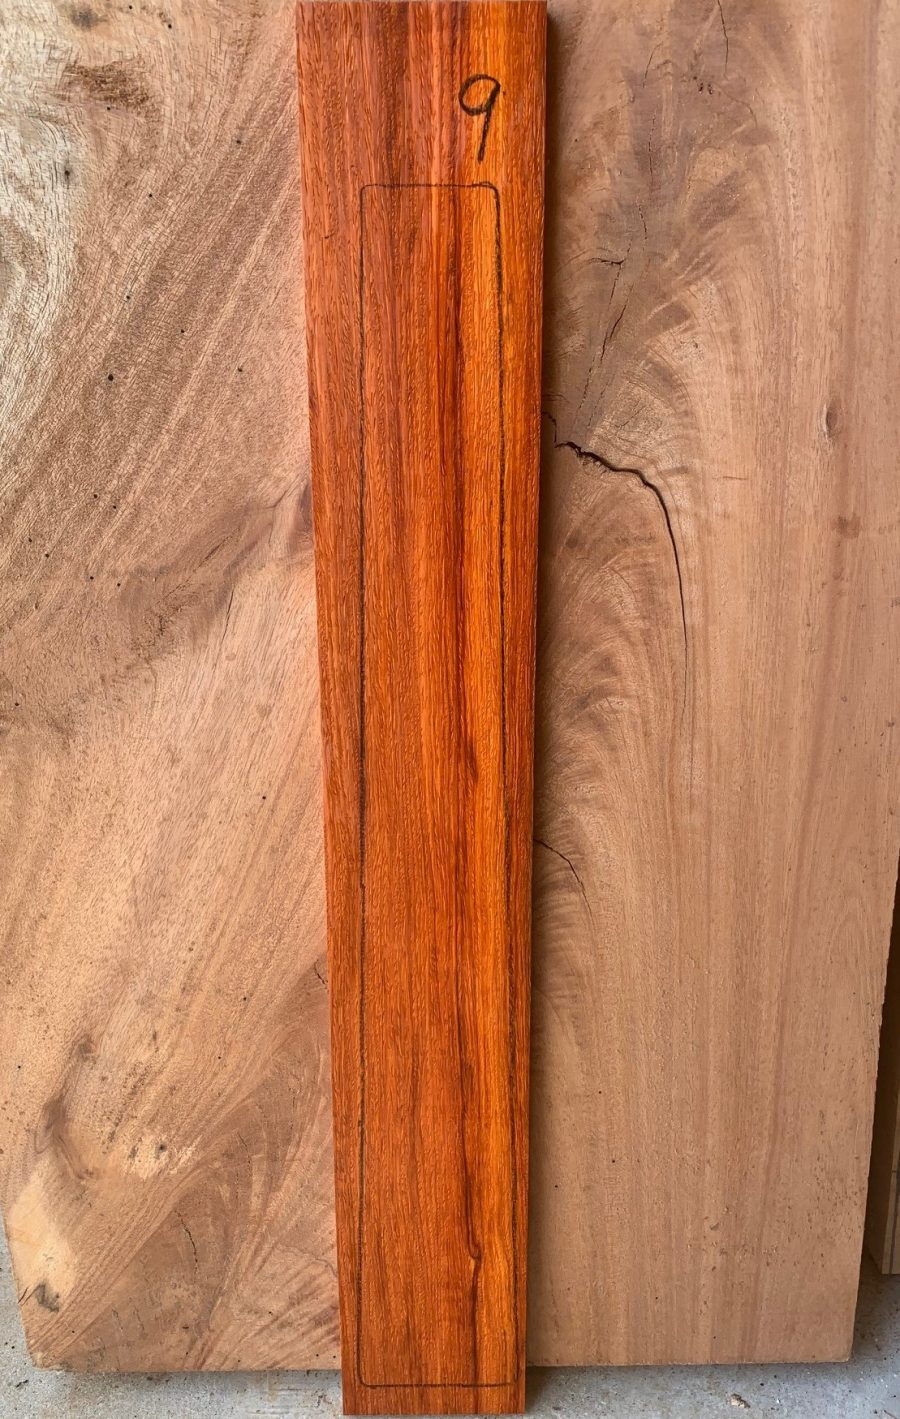 Australian timbers for musical instruments